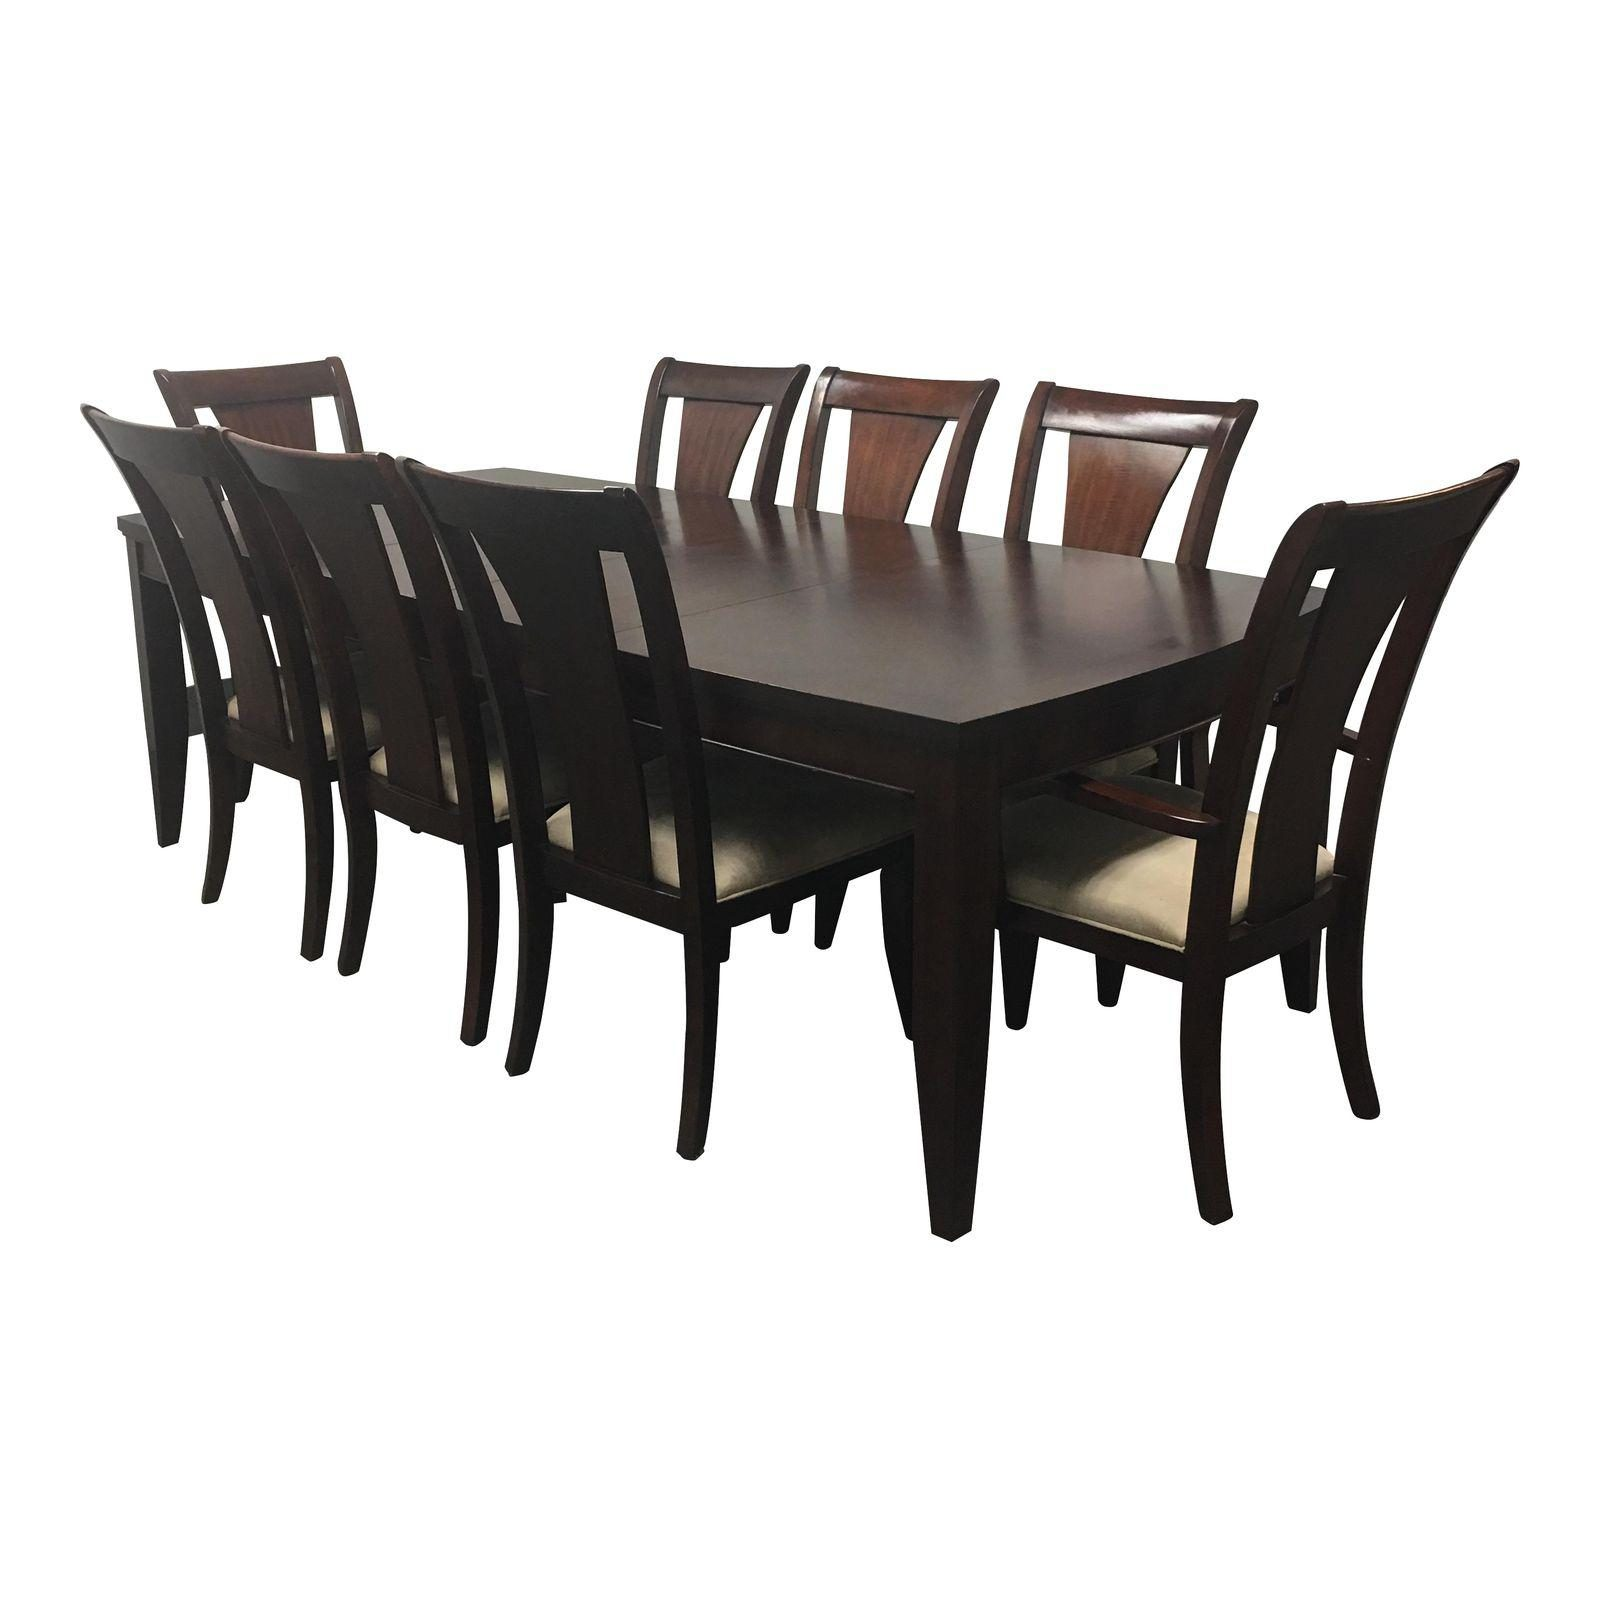 Brilliant Dining Table 2 Leaves Eight Chairs From Macys 5771 Design Download Free Architecture Designs Ogrambritishbridgeorg